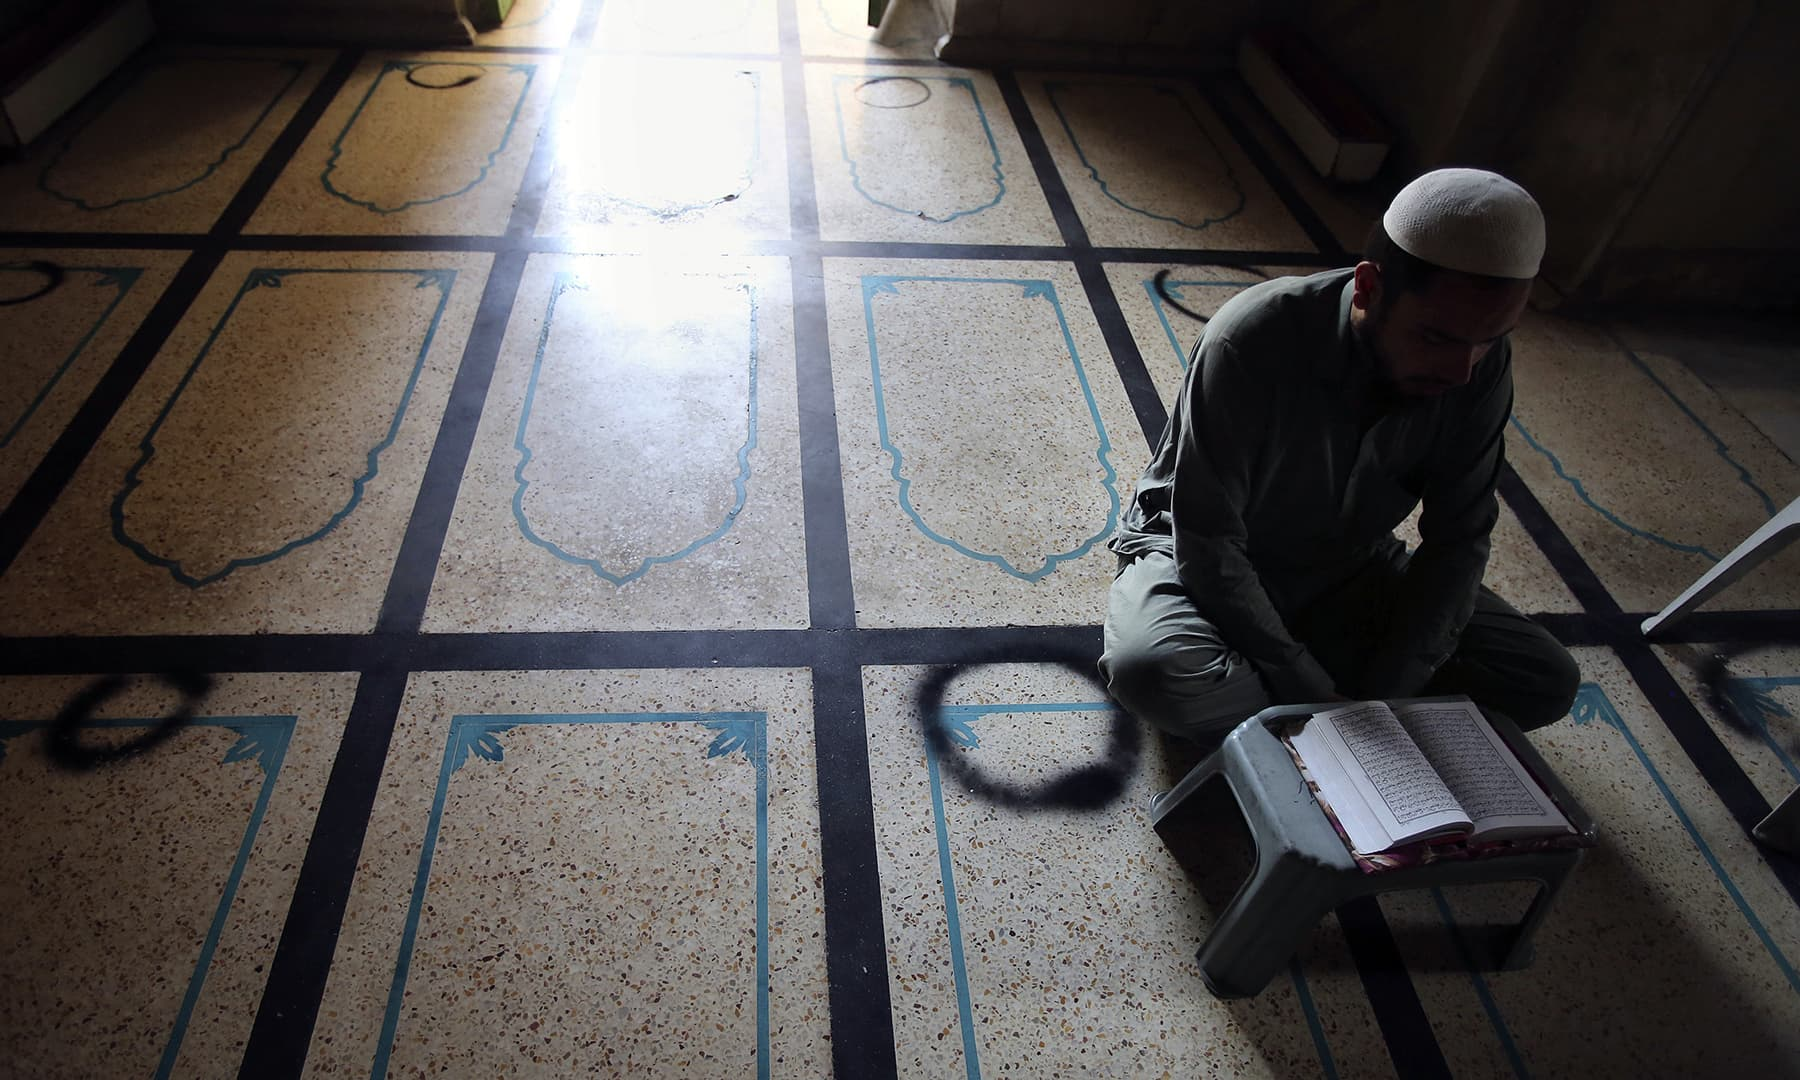 A worshipper recites the Holy Quran at a mosque during the first day of Ramazan in Peshawar. — AP